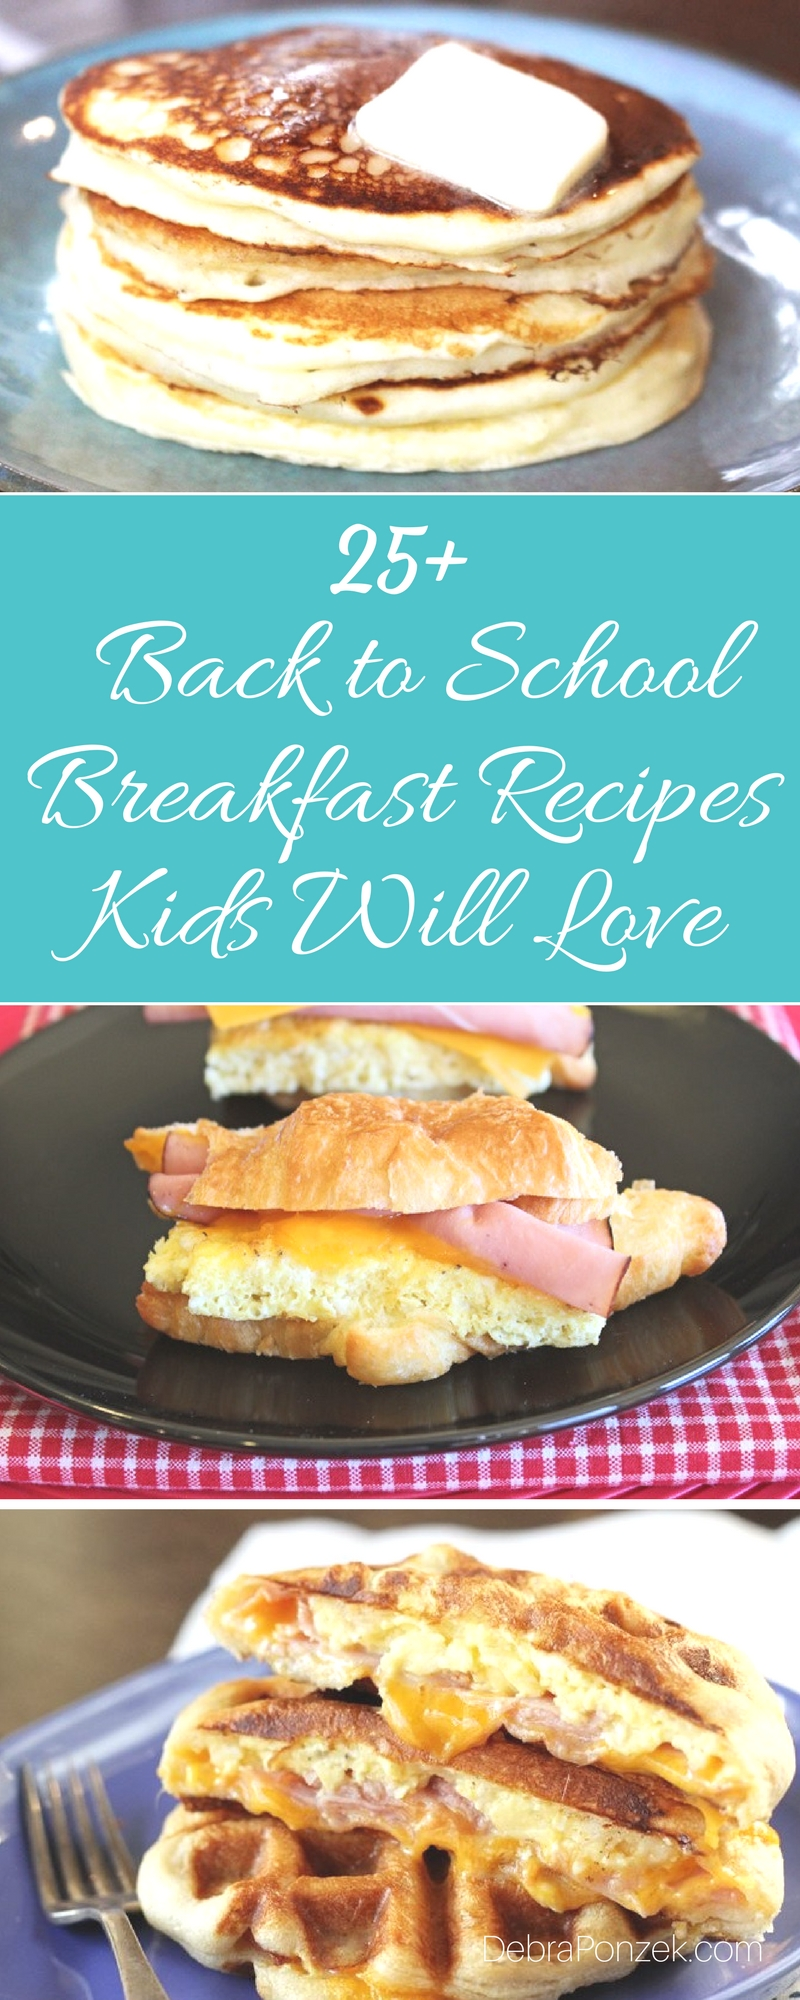 Start your day with a back to school breakfast that is worthy of your time and taste buds every day of the school week and on the weekends too.